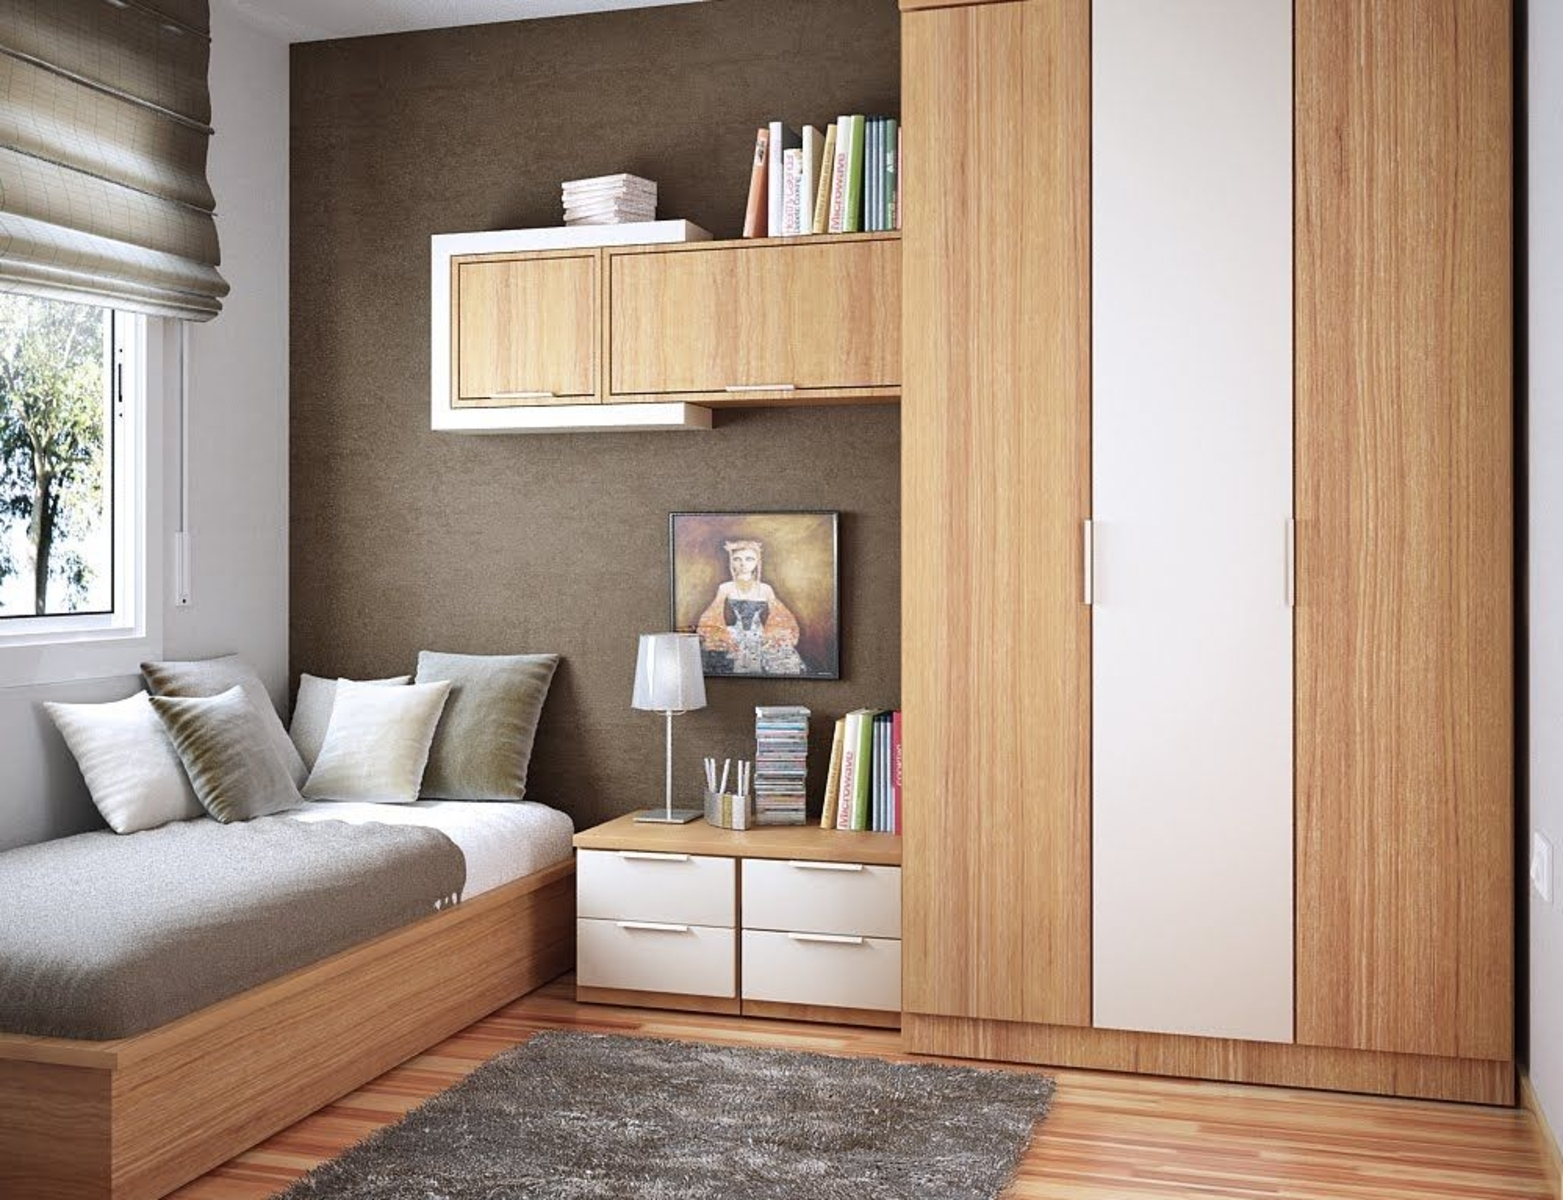 Furniture Space Saving House In Bedroom Feature Wooden Book Intended For Space Saving Wardrobes (Image 14 of 25)